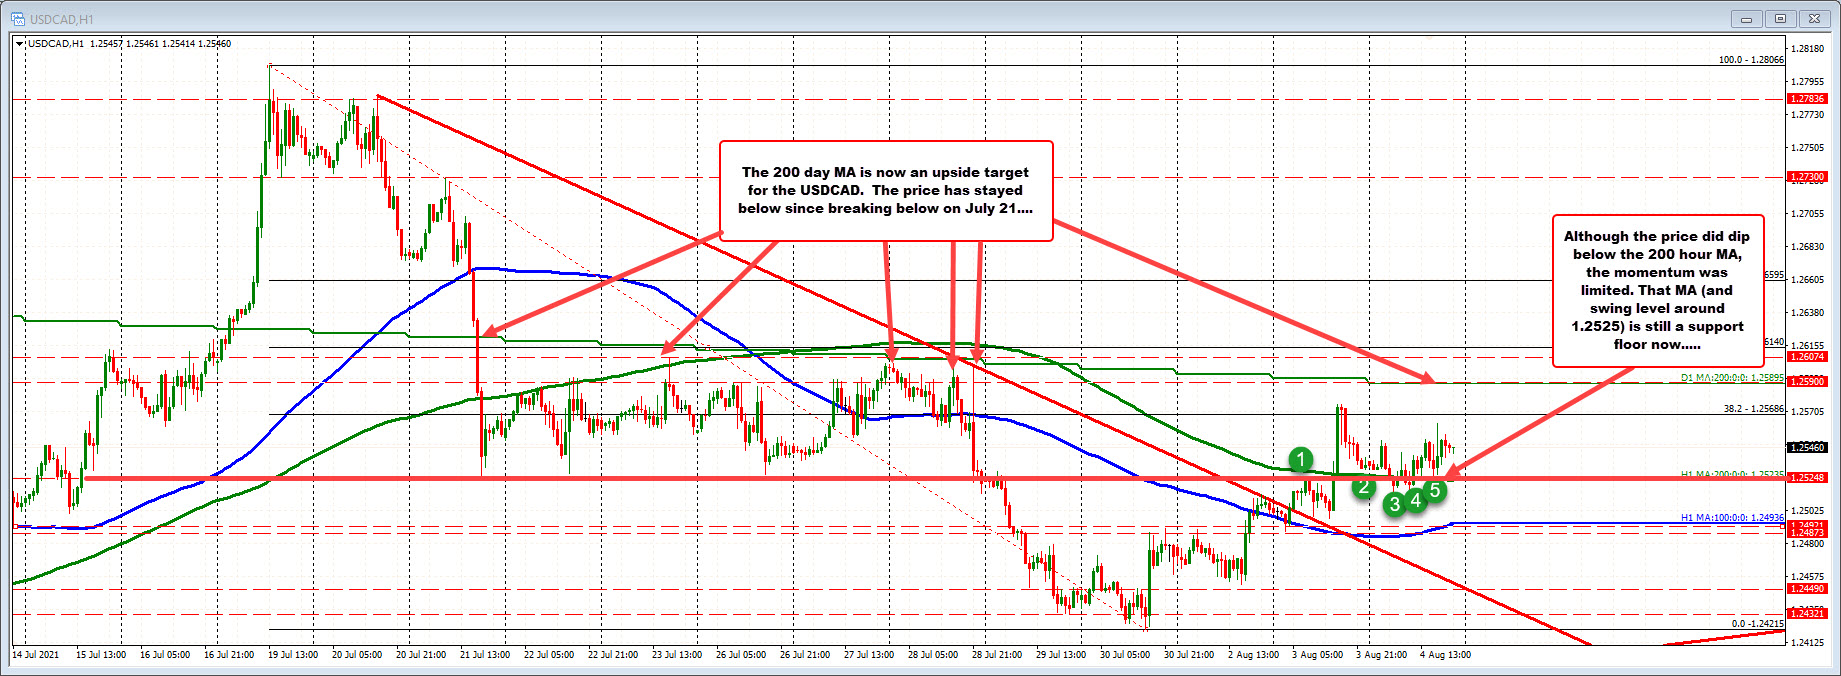 USDCAD pair is torn between lower oil and stronger USD flows